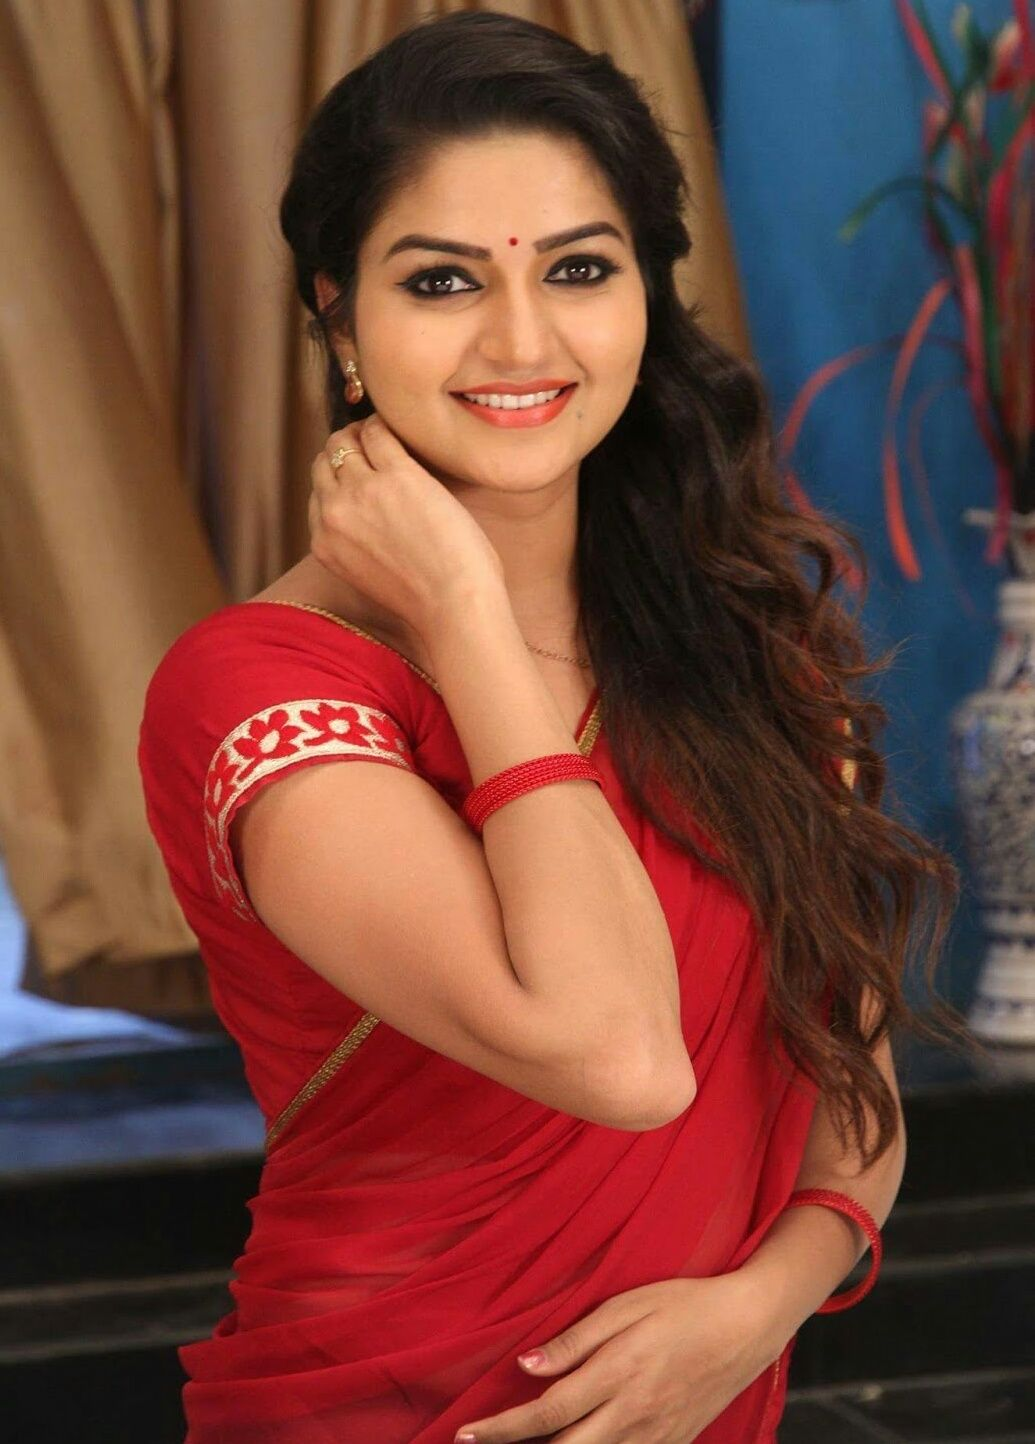 Muddu Manase Movie, Nithya Ram Serials, Nithya Ram Date Of -7471